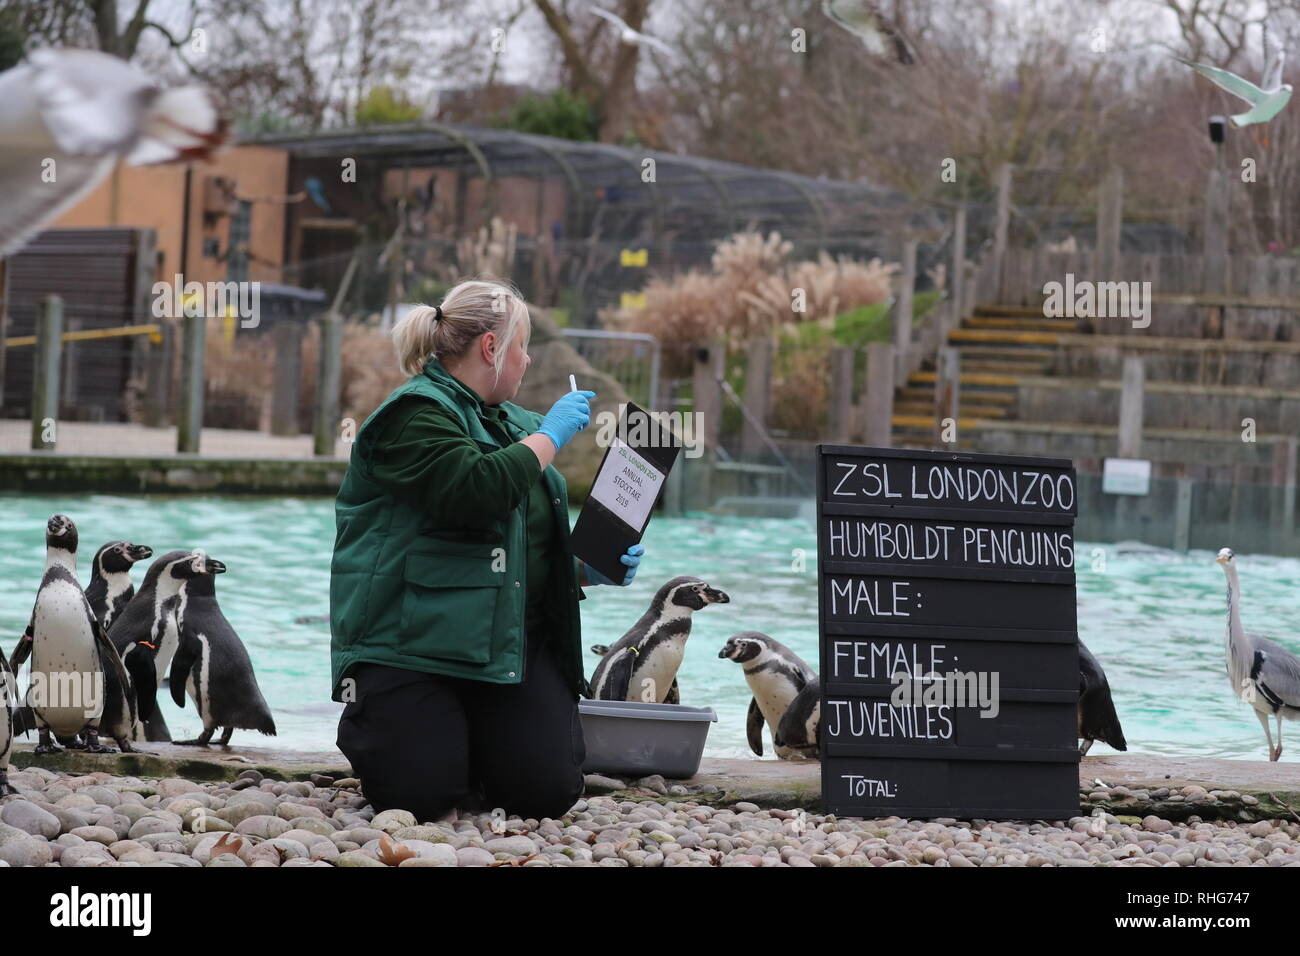 Annual Stocktake At London Zoo Humboldt Penguins Featuring